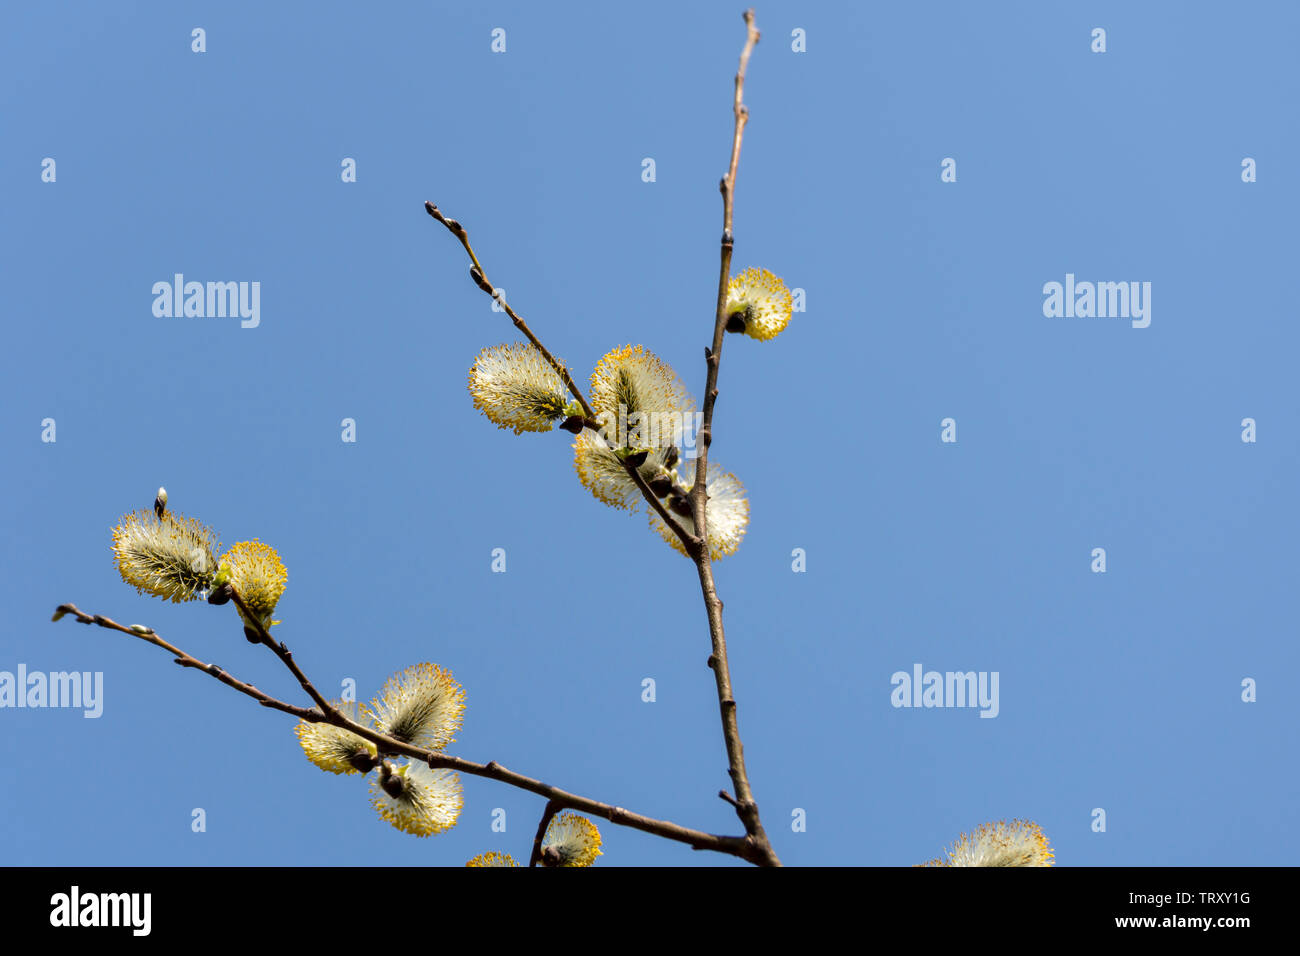 Blooming sallow twig with blue sky in background, picture from Northern Sweden. - Stock Image